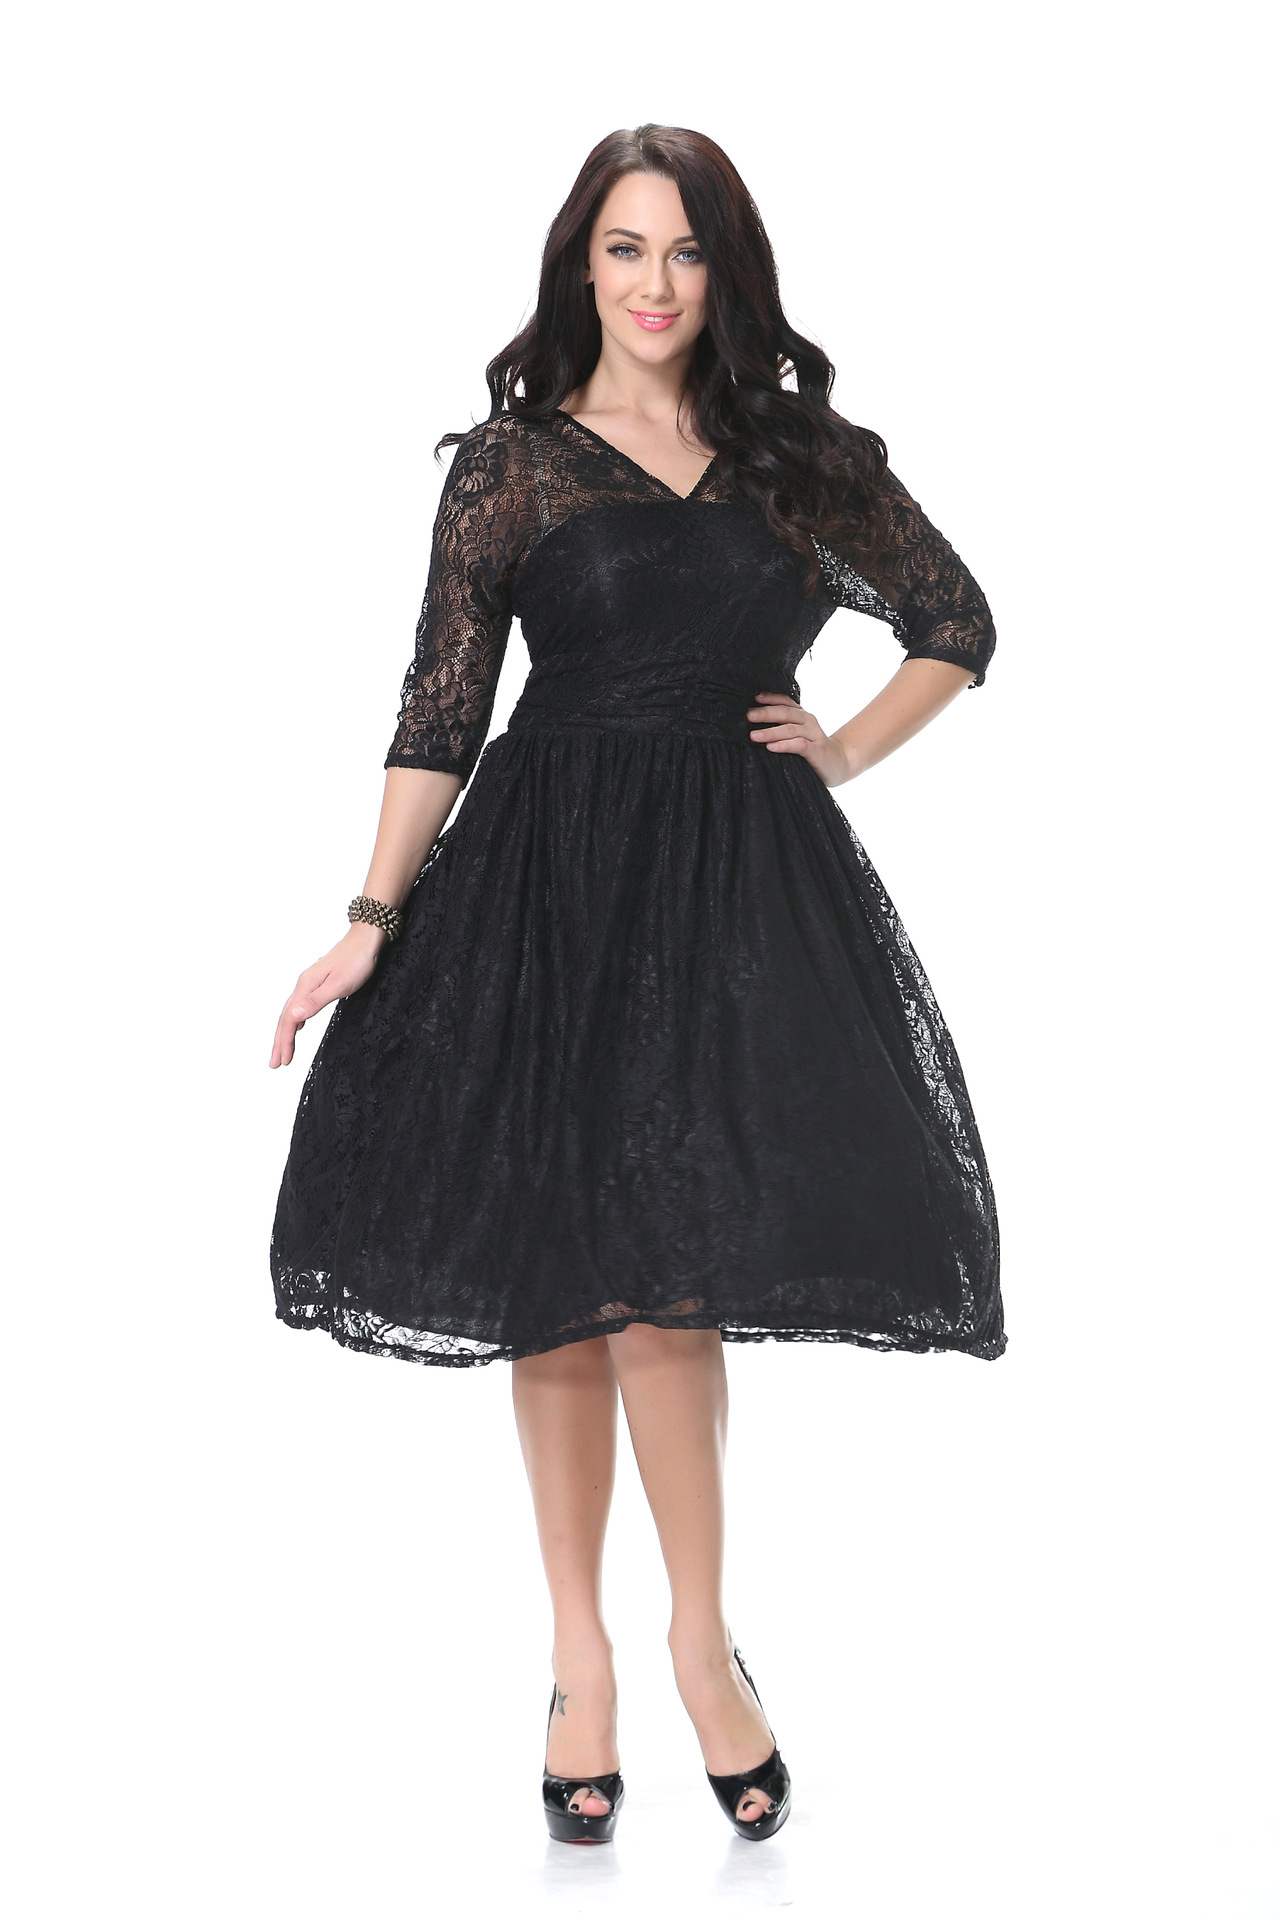 new spring/summer maternity dresses plus size women\'s evening party ...